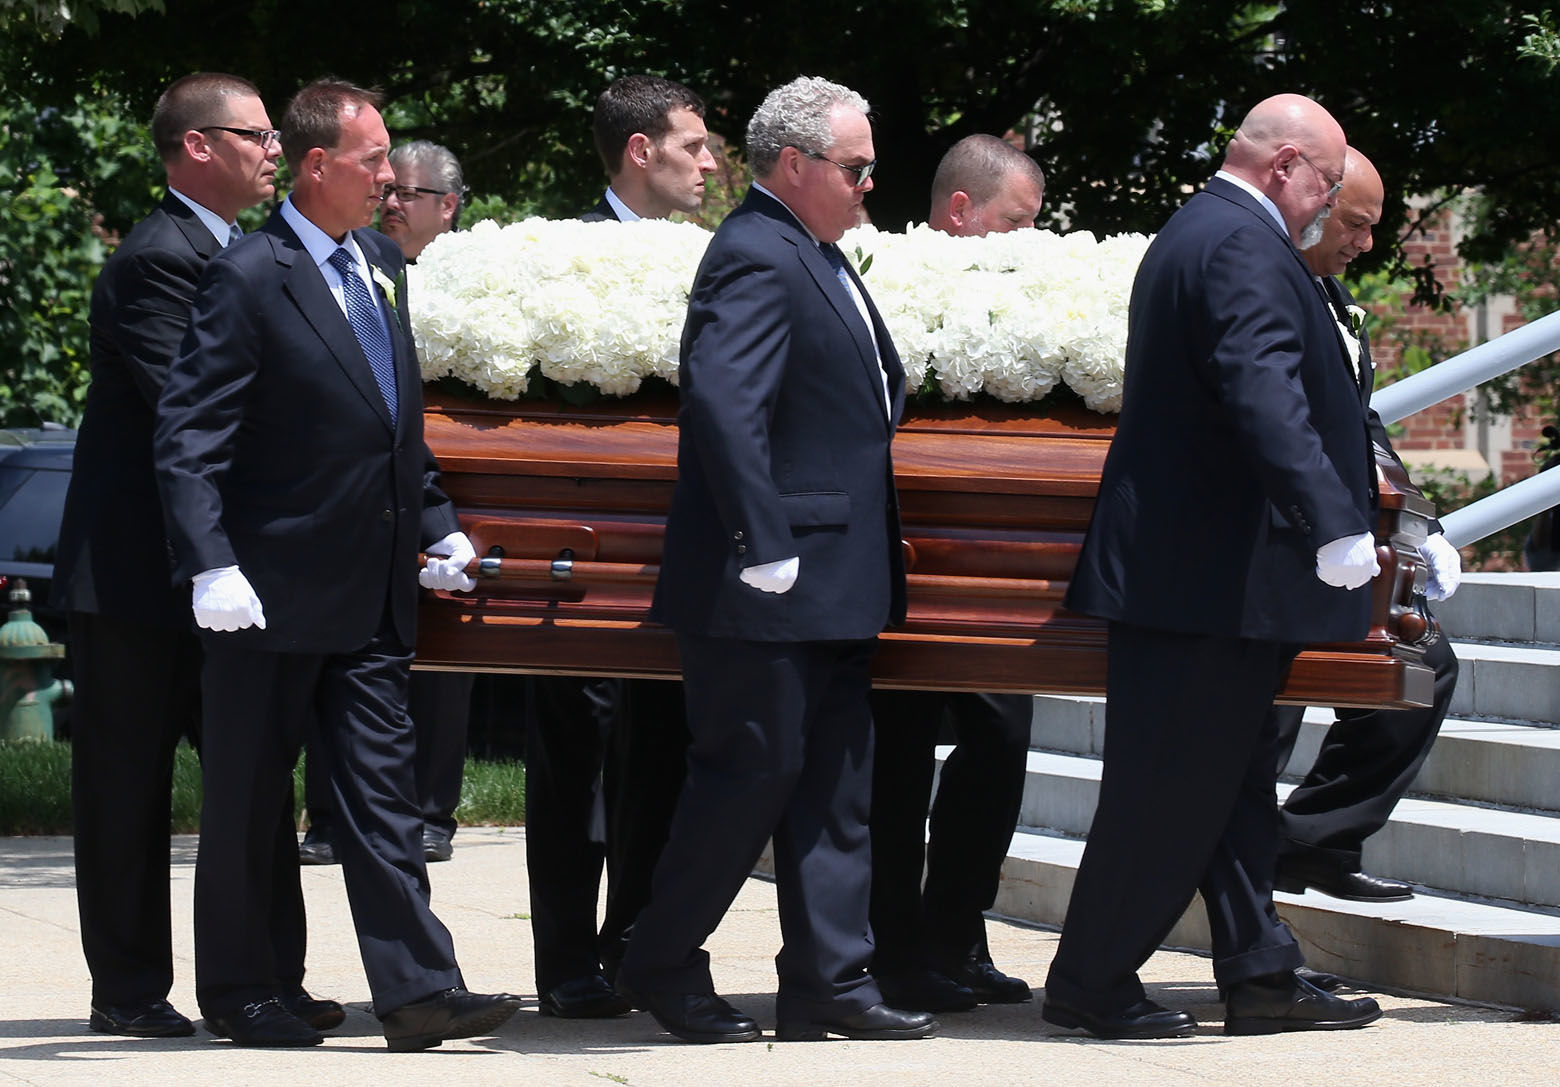 WASHINGTON, DC - JUNE 01: The casket of Savvas Savopoulos is carried during a funeral service at the Saint Sophia Greek Orthodox Cathedral June 1, 2015 in Washington, DC. Darron Dellon Dennis Wint, was arrested for the murders of Savvas Savopoulos, 46, his wife, Amy, 47, and their 10 year old son, Philip along with their housekeeper, Veralicia Figueroa, 57, who was killed with them.  (Photo by Mark Wilson/Getty Images)